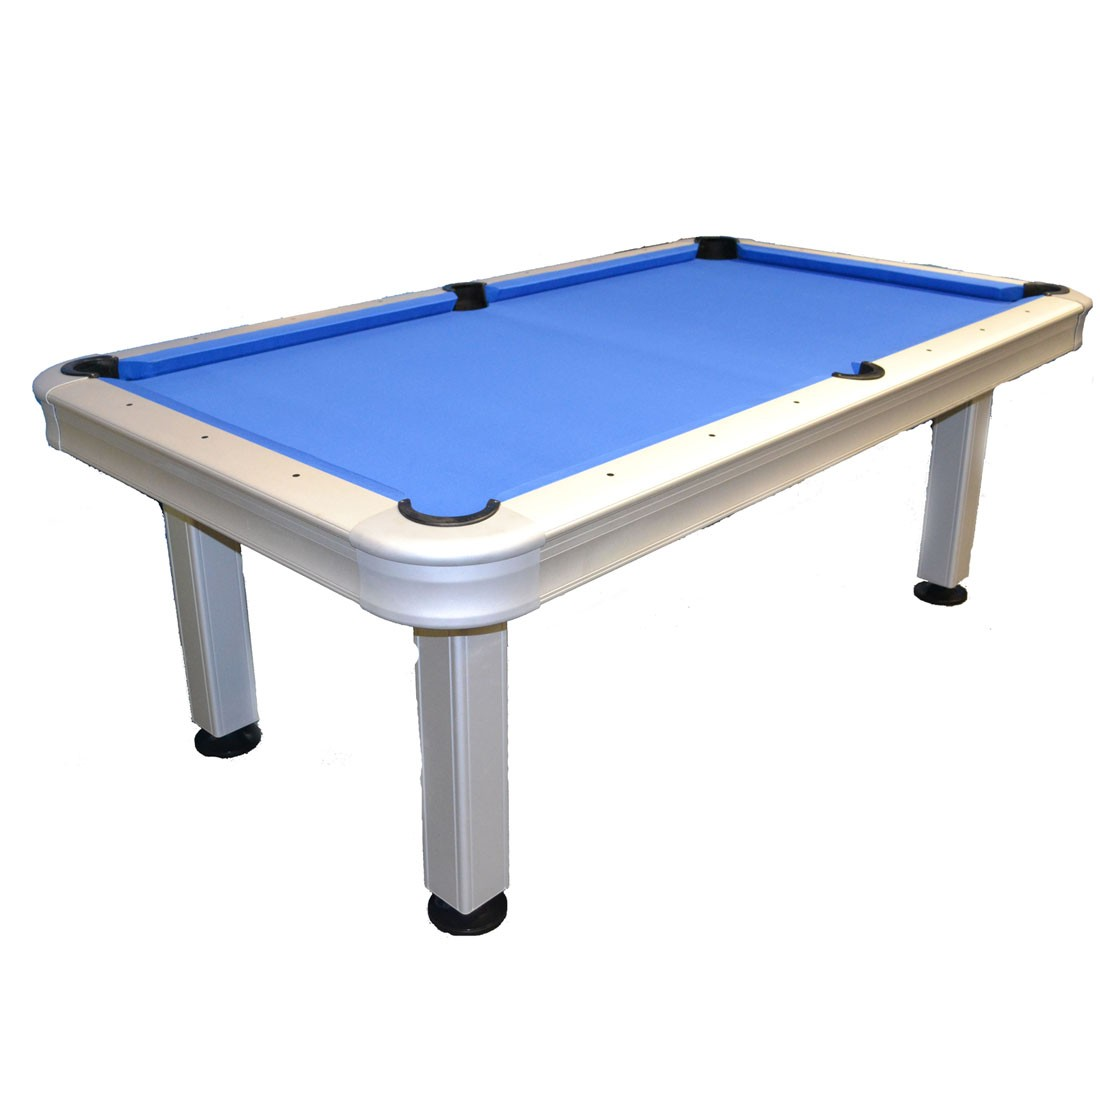 7 Outdoor Pool Table With Accessories Gametablesonline Com